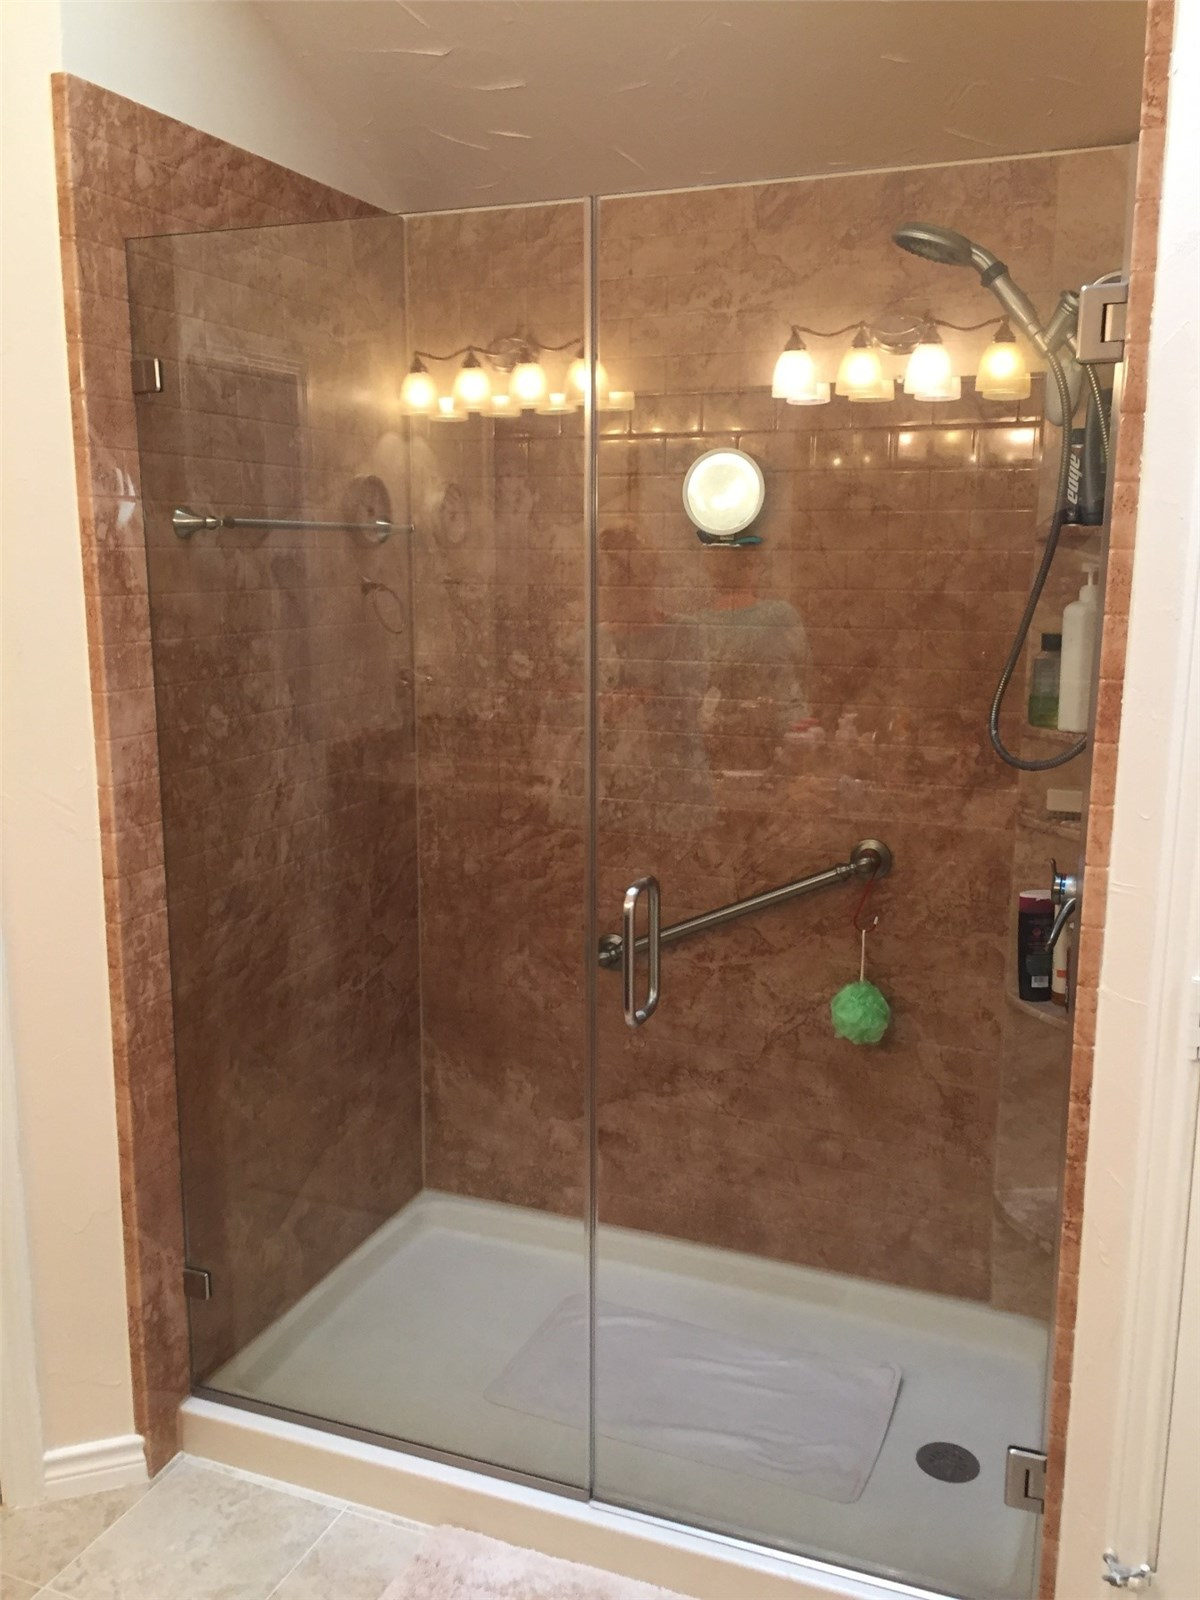 Bath and Shower Remodeling | Bathroom Remodelers Step In Mobile Home Showers on mobile home toilet, mobile home refrigerator, mobile home covered patio, mobile home tile flooring,